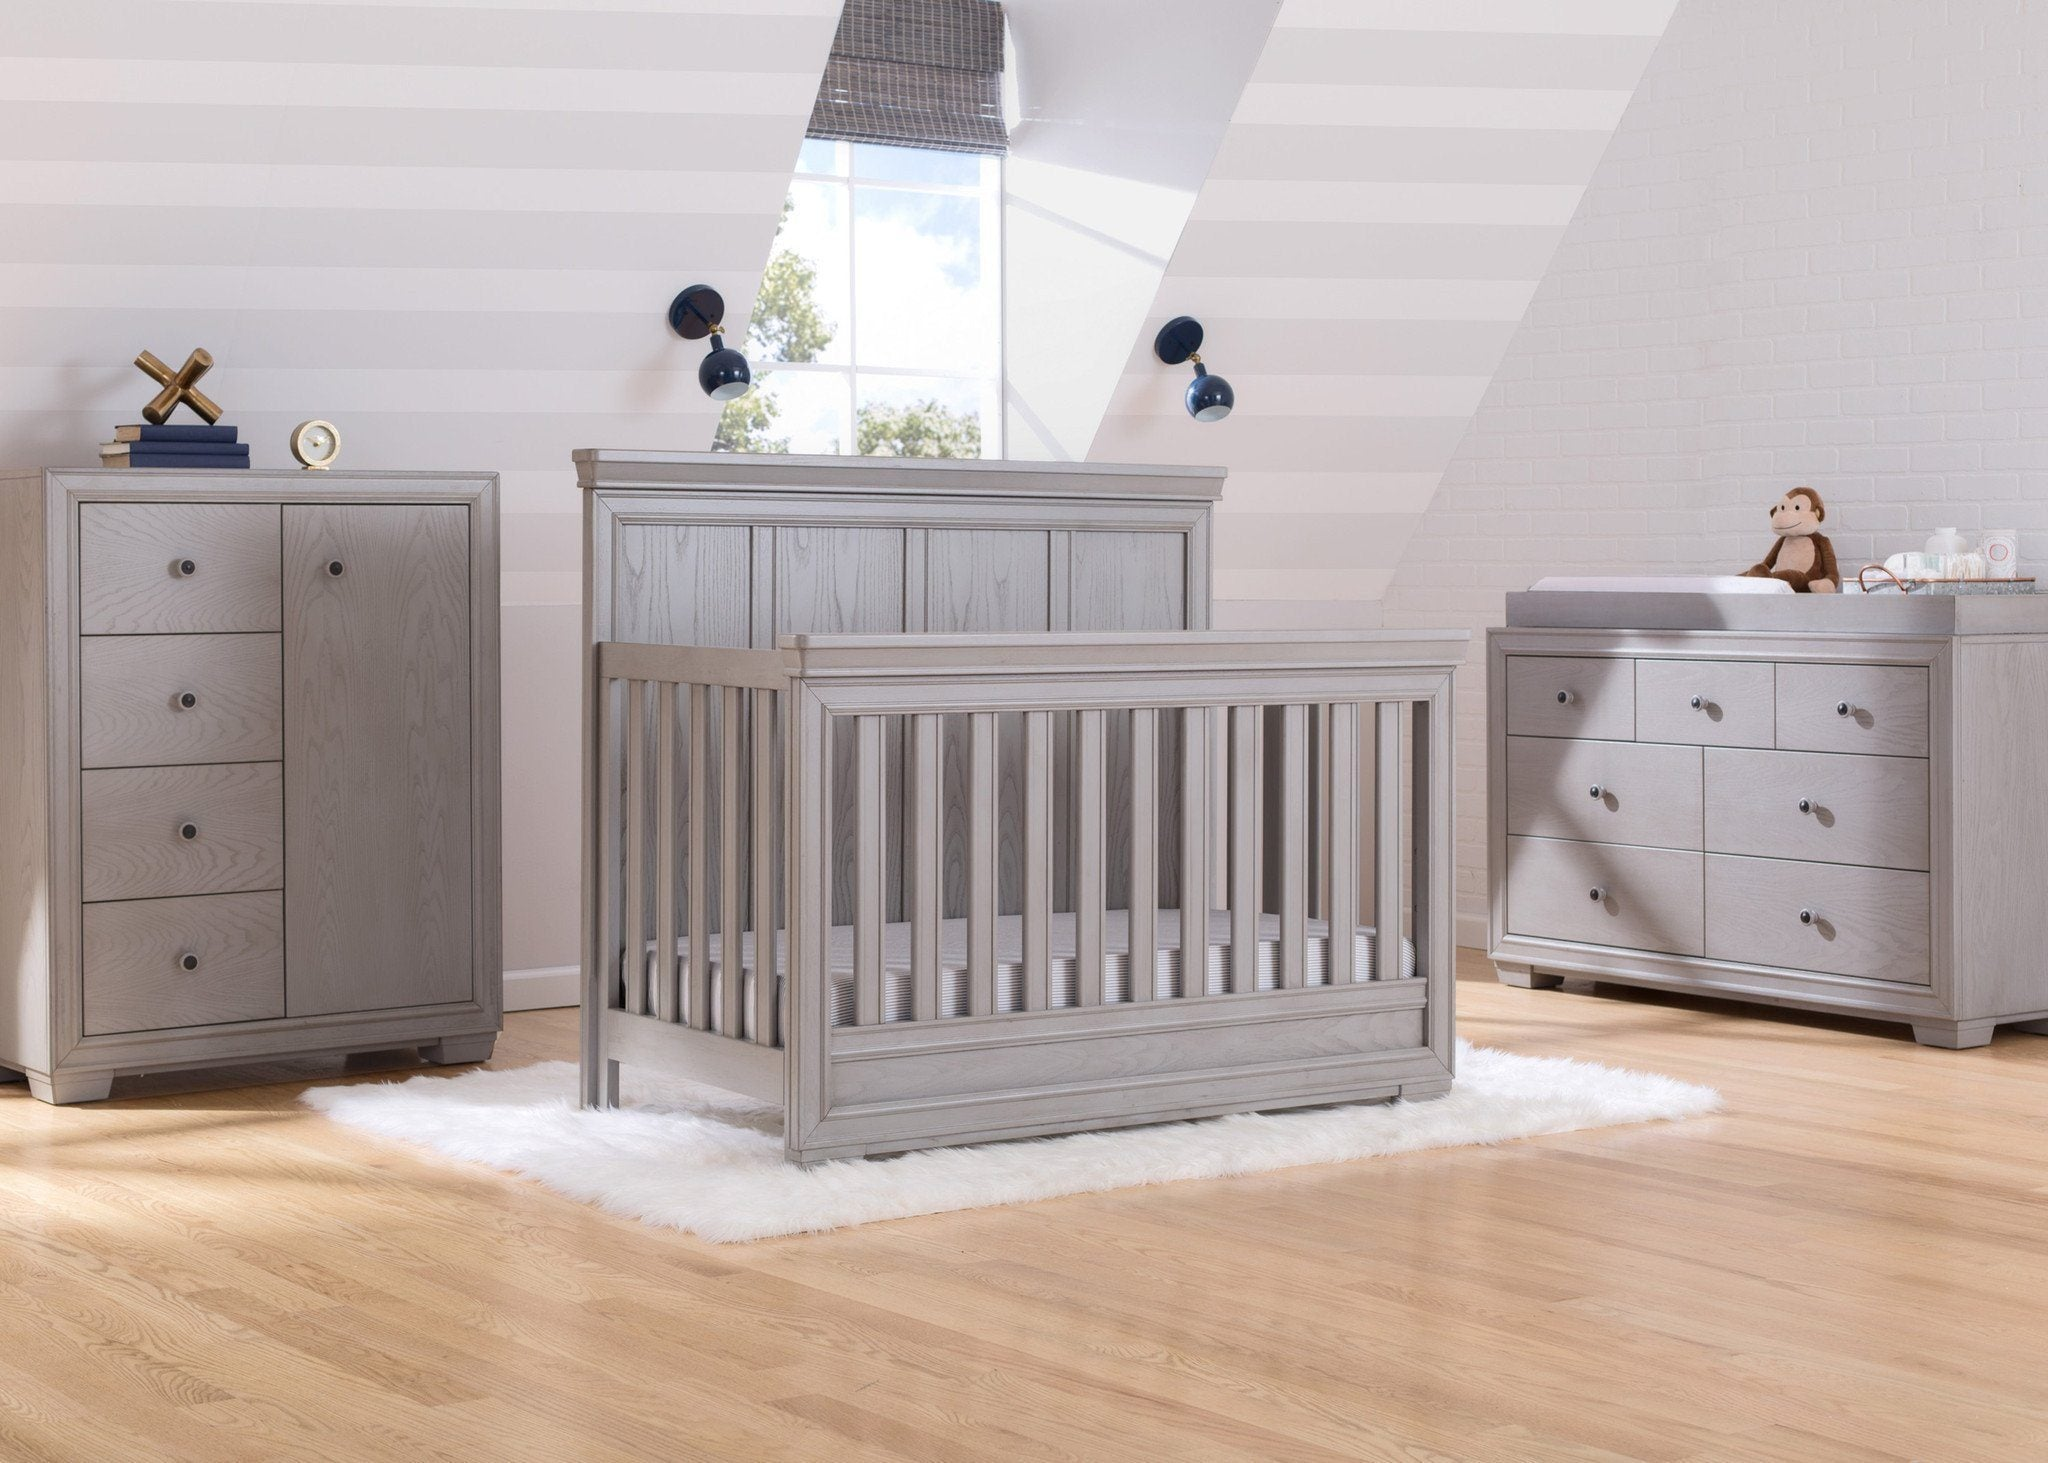 Simmons Kids Storm (161) Ravello Crib 'N' More, Room View, a1a for Ravello Convertible Crib 'N' More